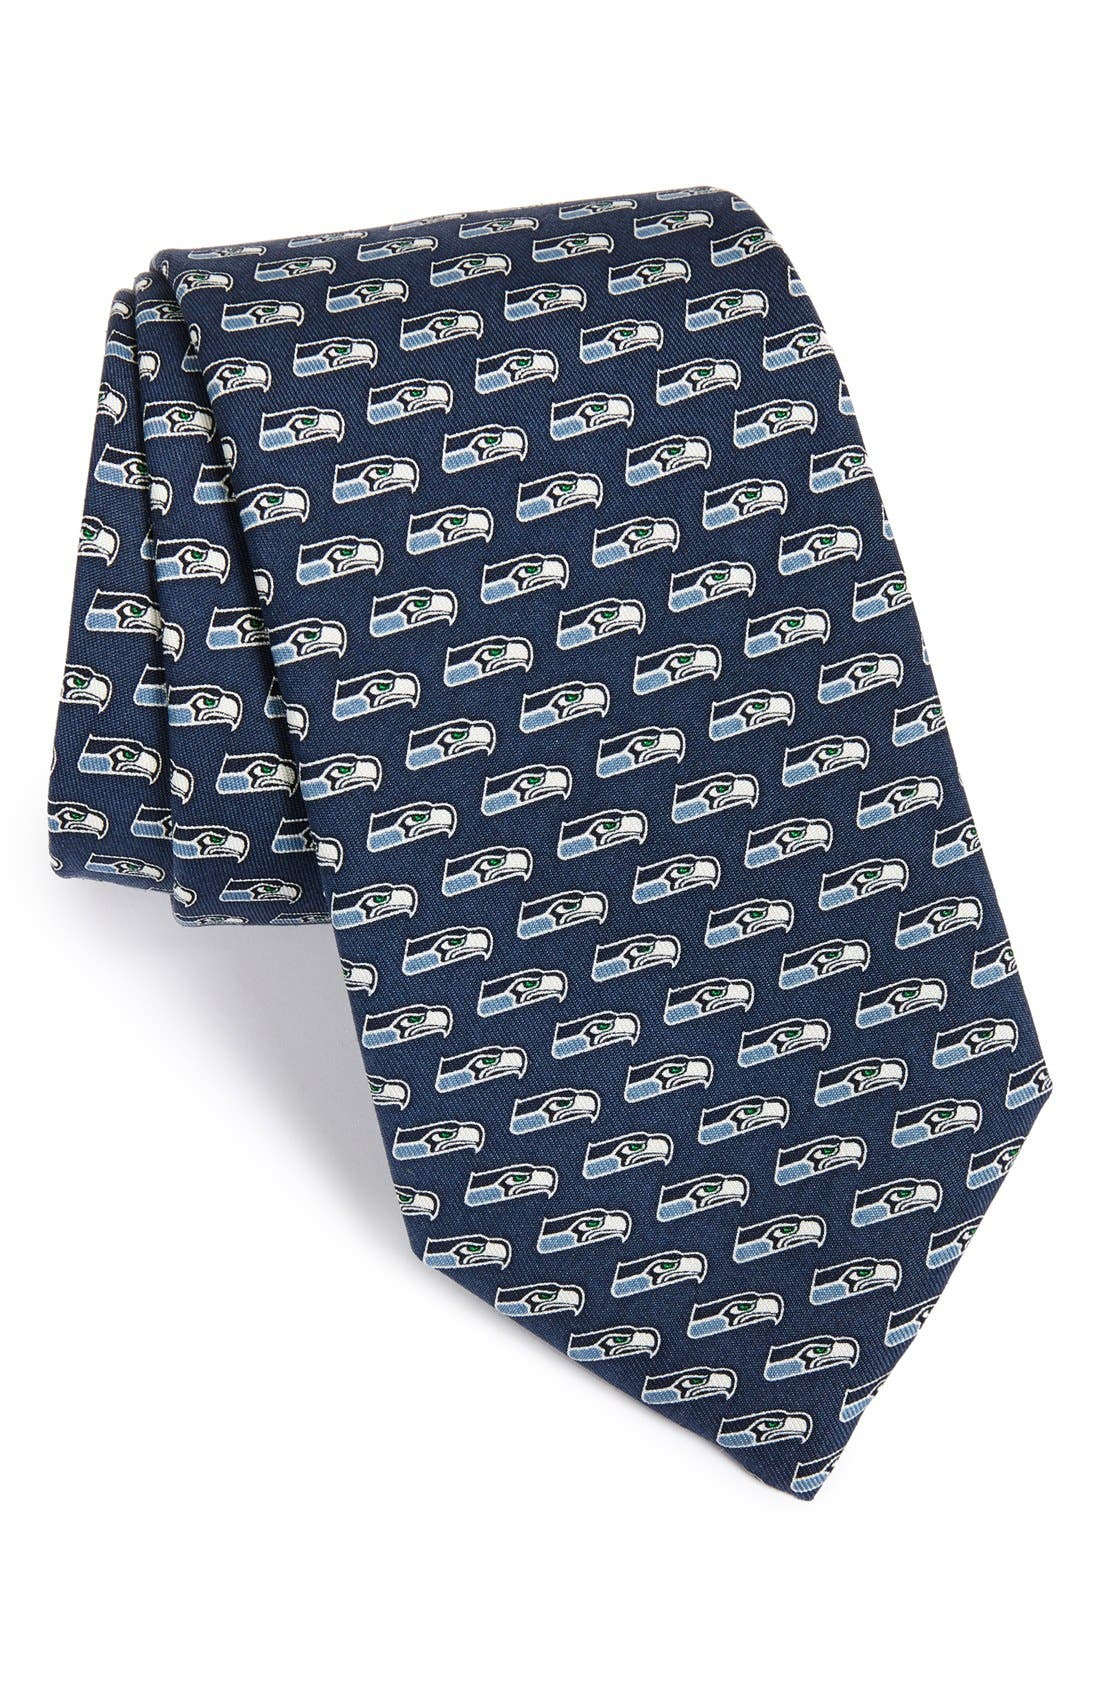 Seattle Seahawks - NFL Woven Silk Tie,                             Main thumbnail 1, color,                             414